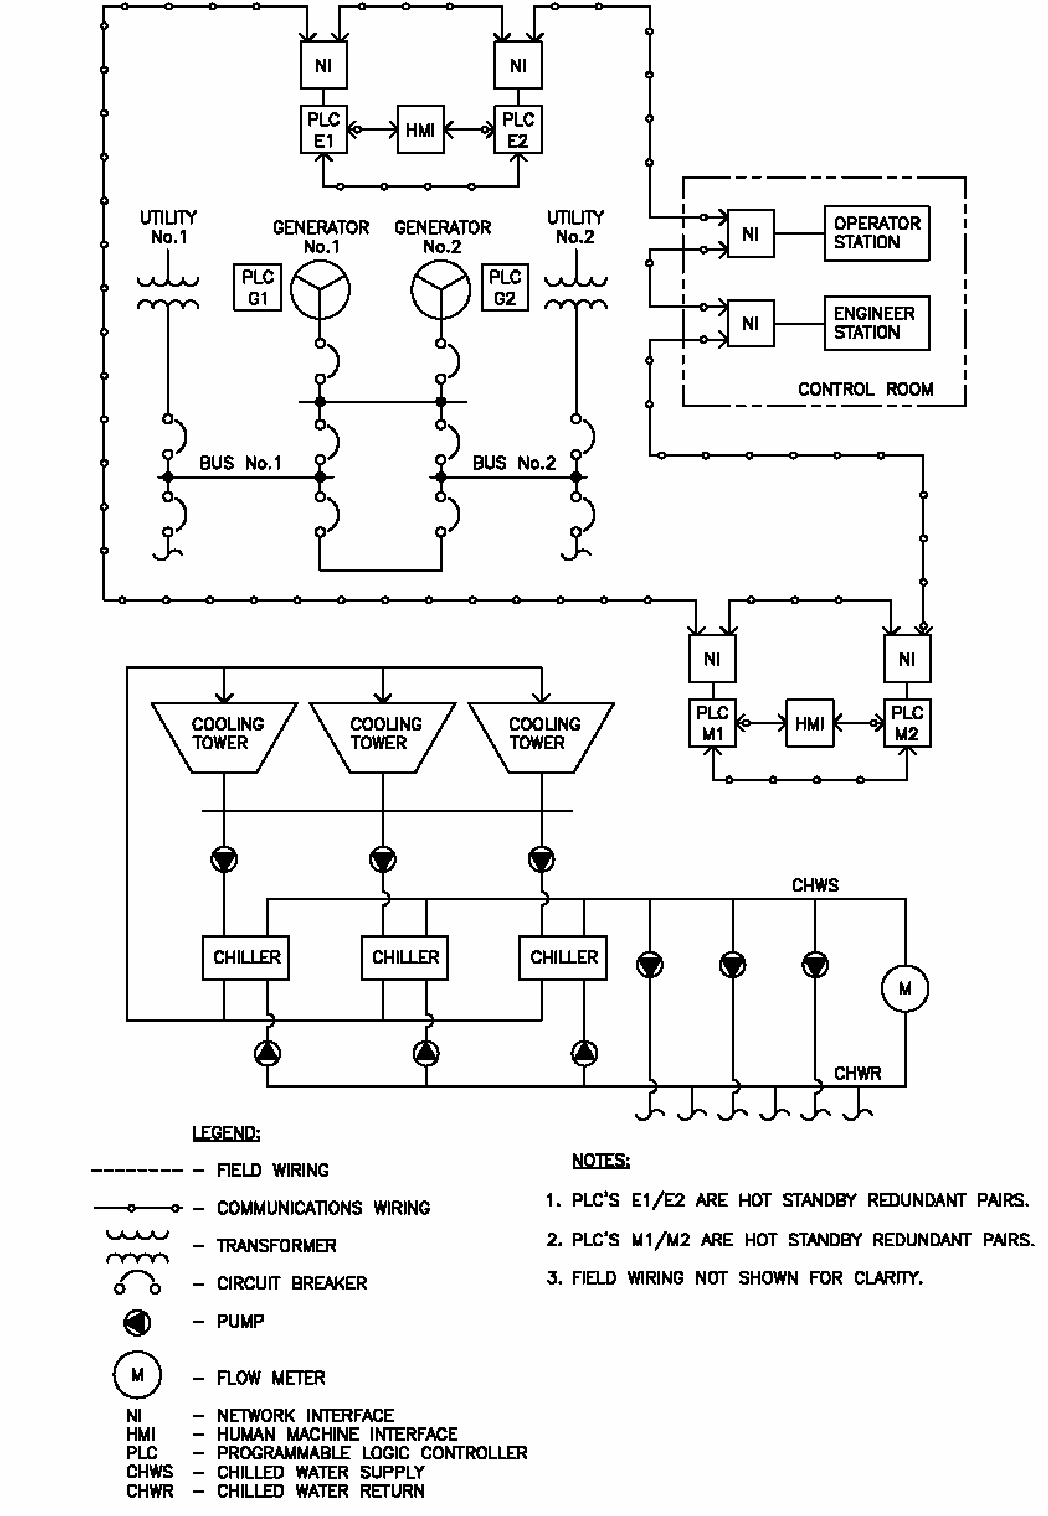 S Meter Circuit Diagram Supervisory Control And Data Acquisition Scada Systems For Command Communications Computer Intelligence Surveillance